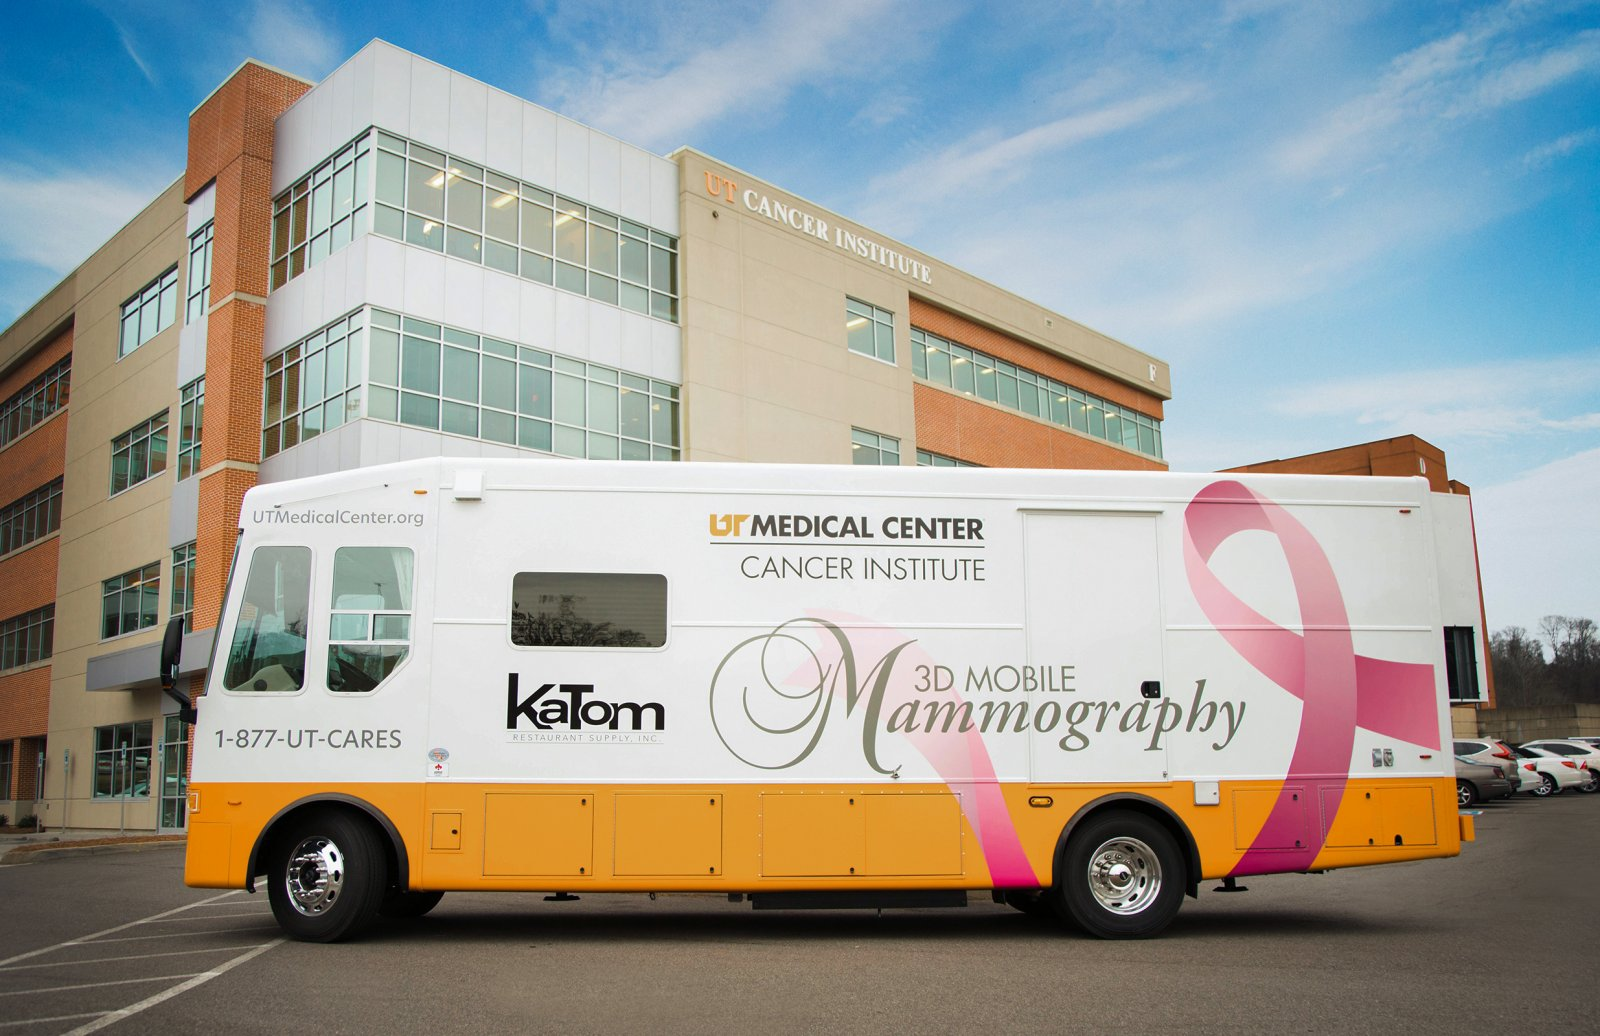 Mobile Mammography Unit parked in front of the Cancer Institute at UT Medical Center in Knoxville, Tennessee